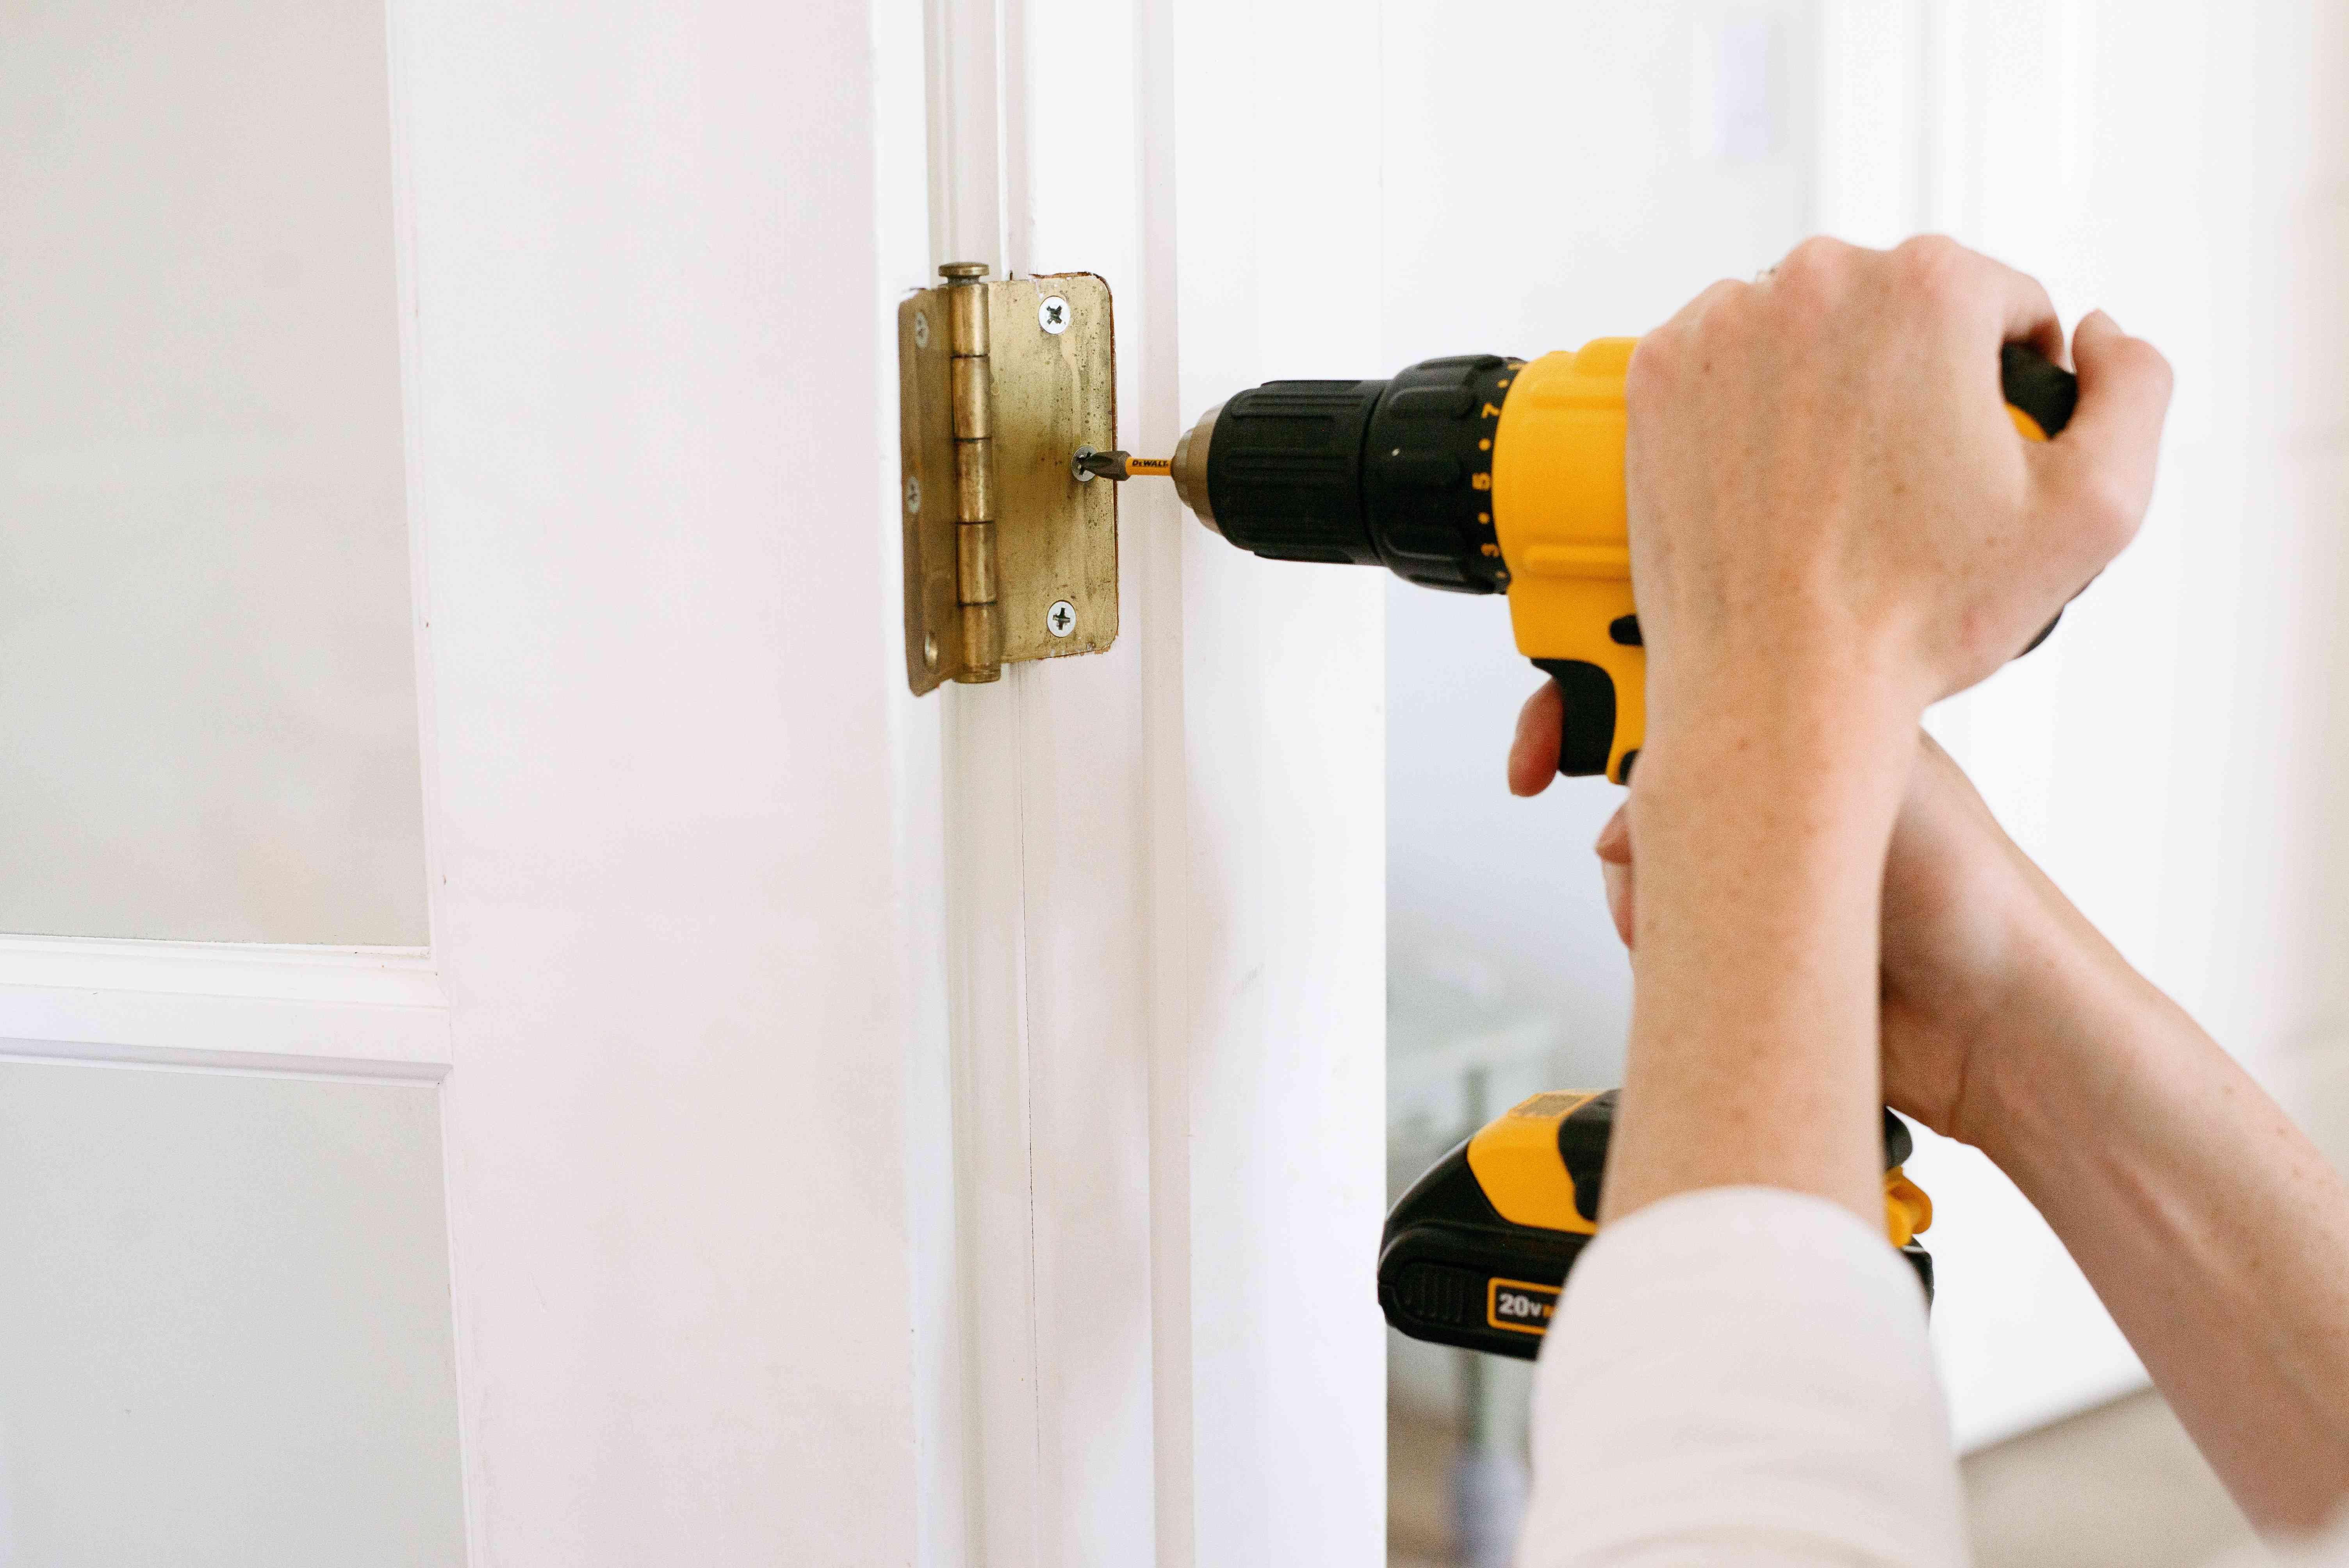 Door hinges removed with yellow electric drill